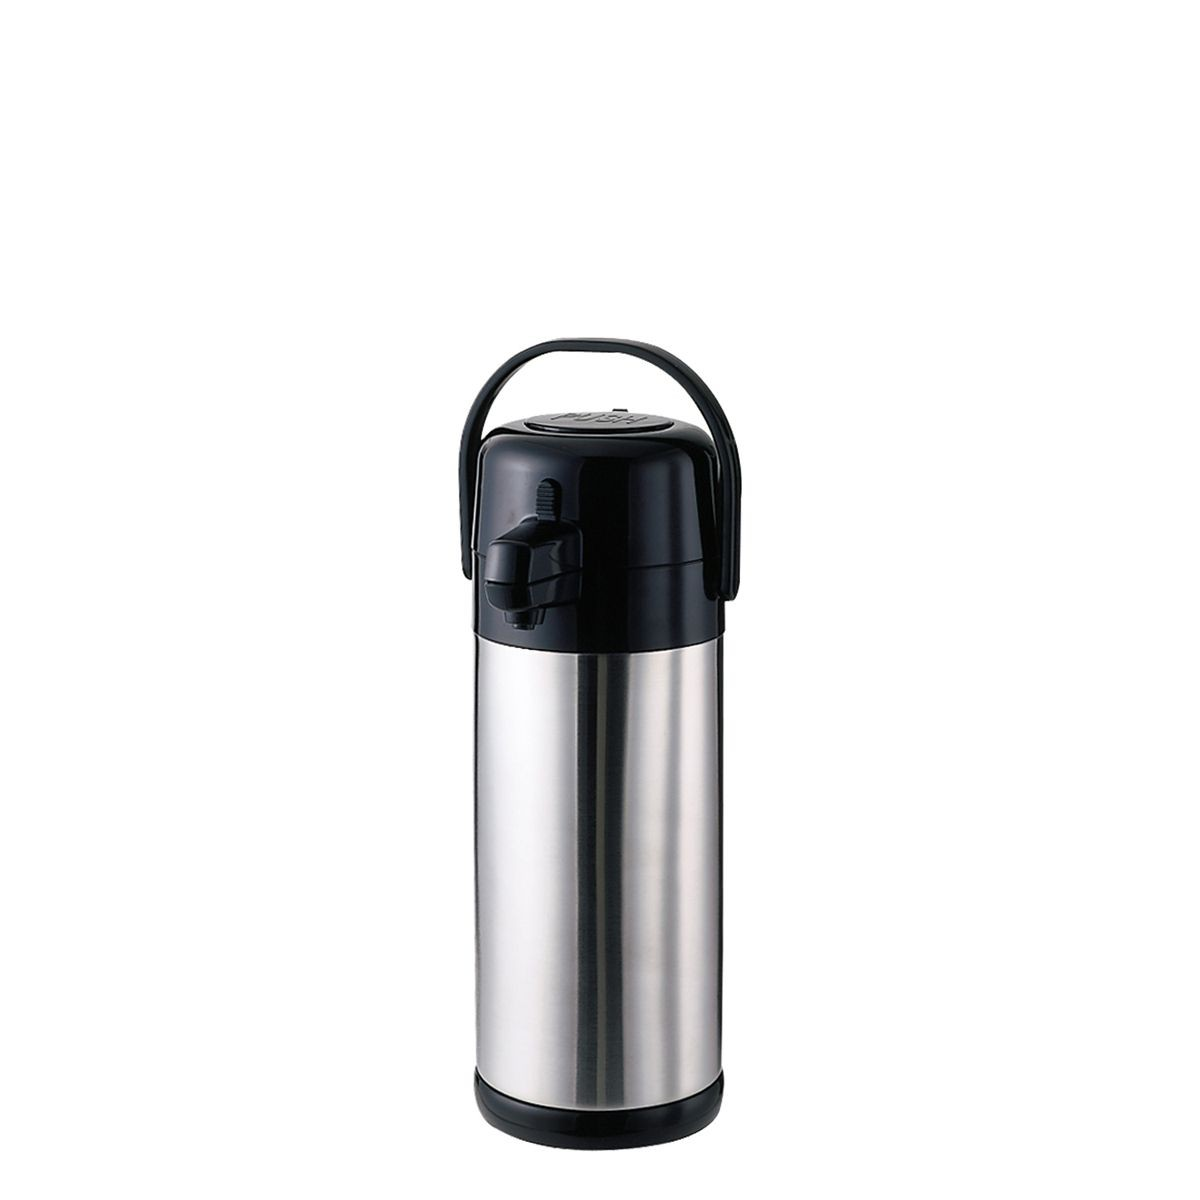 Service Ideas SECA25S Economy Stainless Steel Pump Lid Airpot, 2.5 Liter